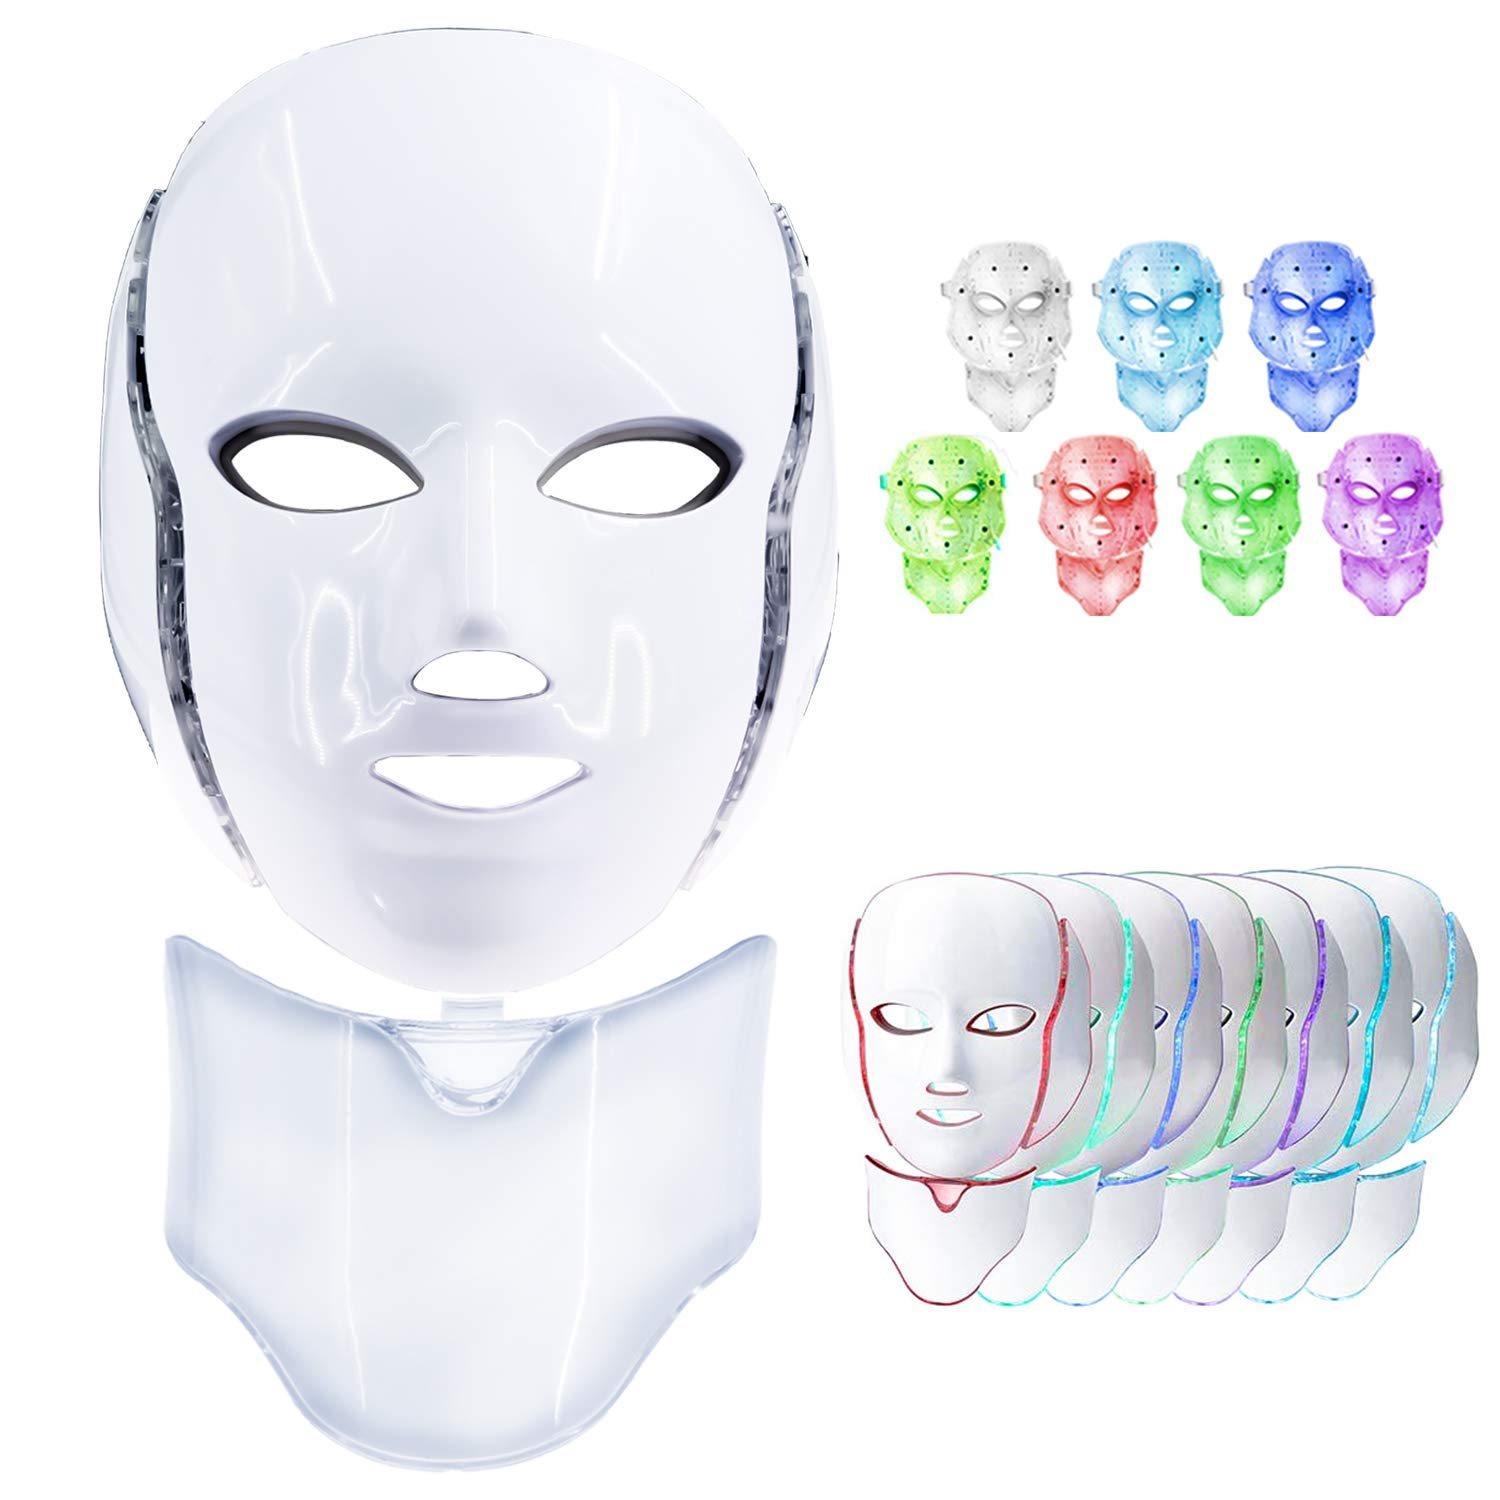 Led Face Mask, 7 Colors Led Light Photon Therapy Mask Beauty Machine Proactive Whitening Skin Care Firming Skin Anti Aging Kit for Neck and Facial with US Plug